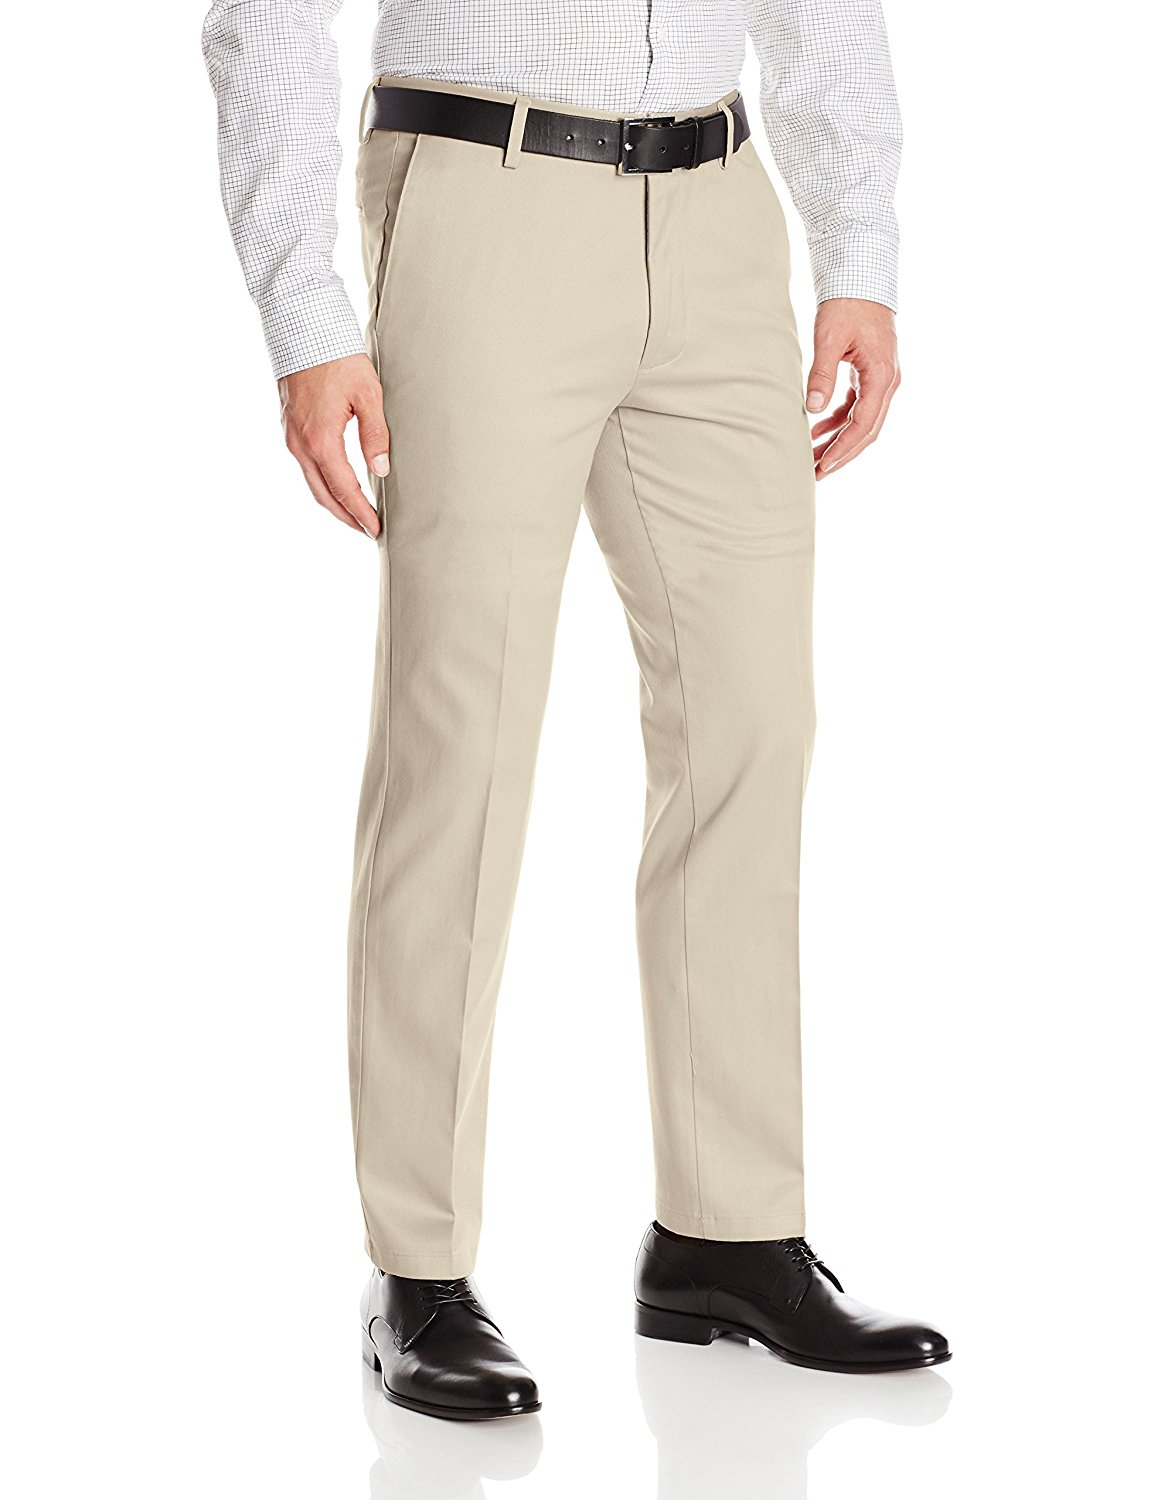 Khaki pants dockers menu0027s slim-fit signature khaki pant d1 at amazon menu0027s clothing  store: cxcnmkh